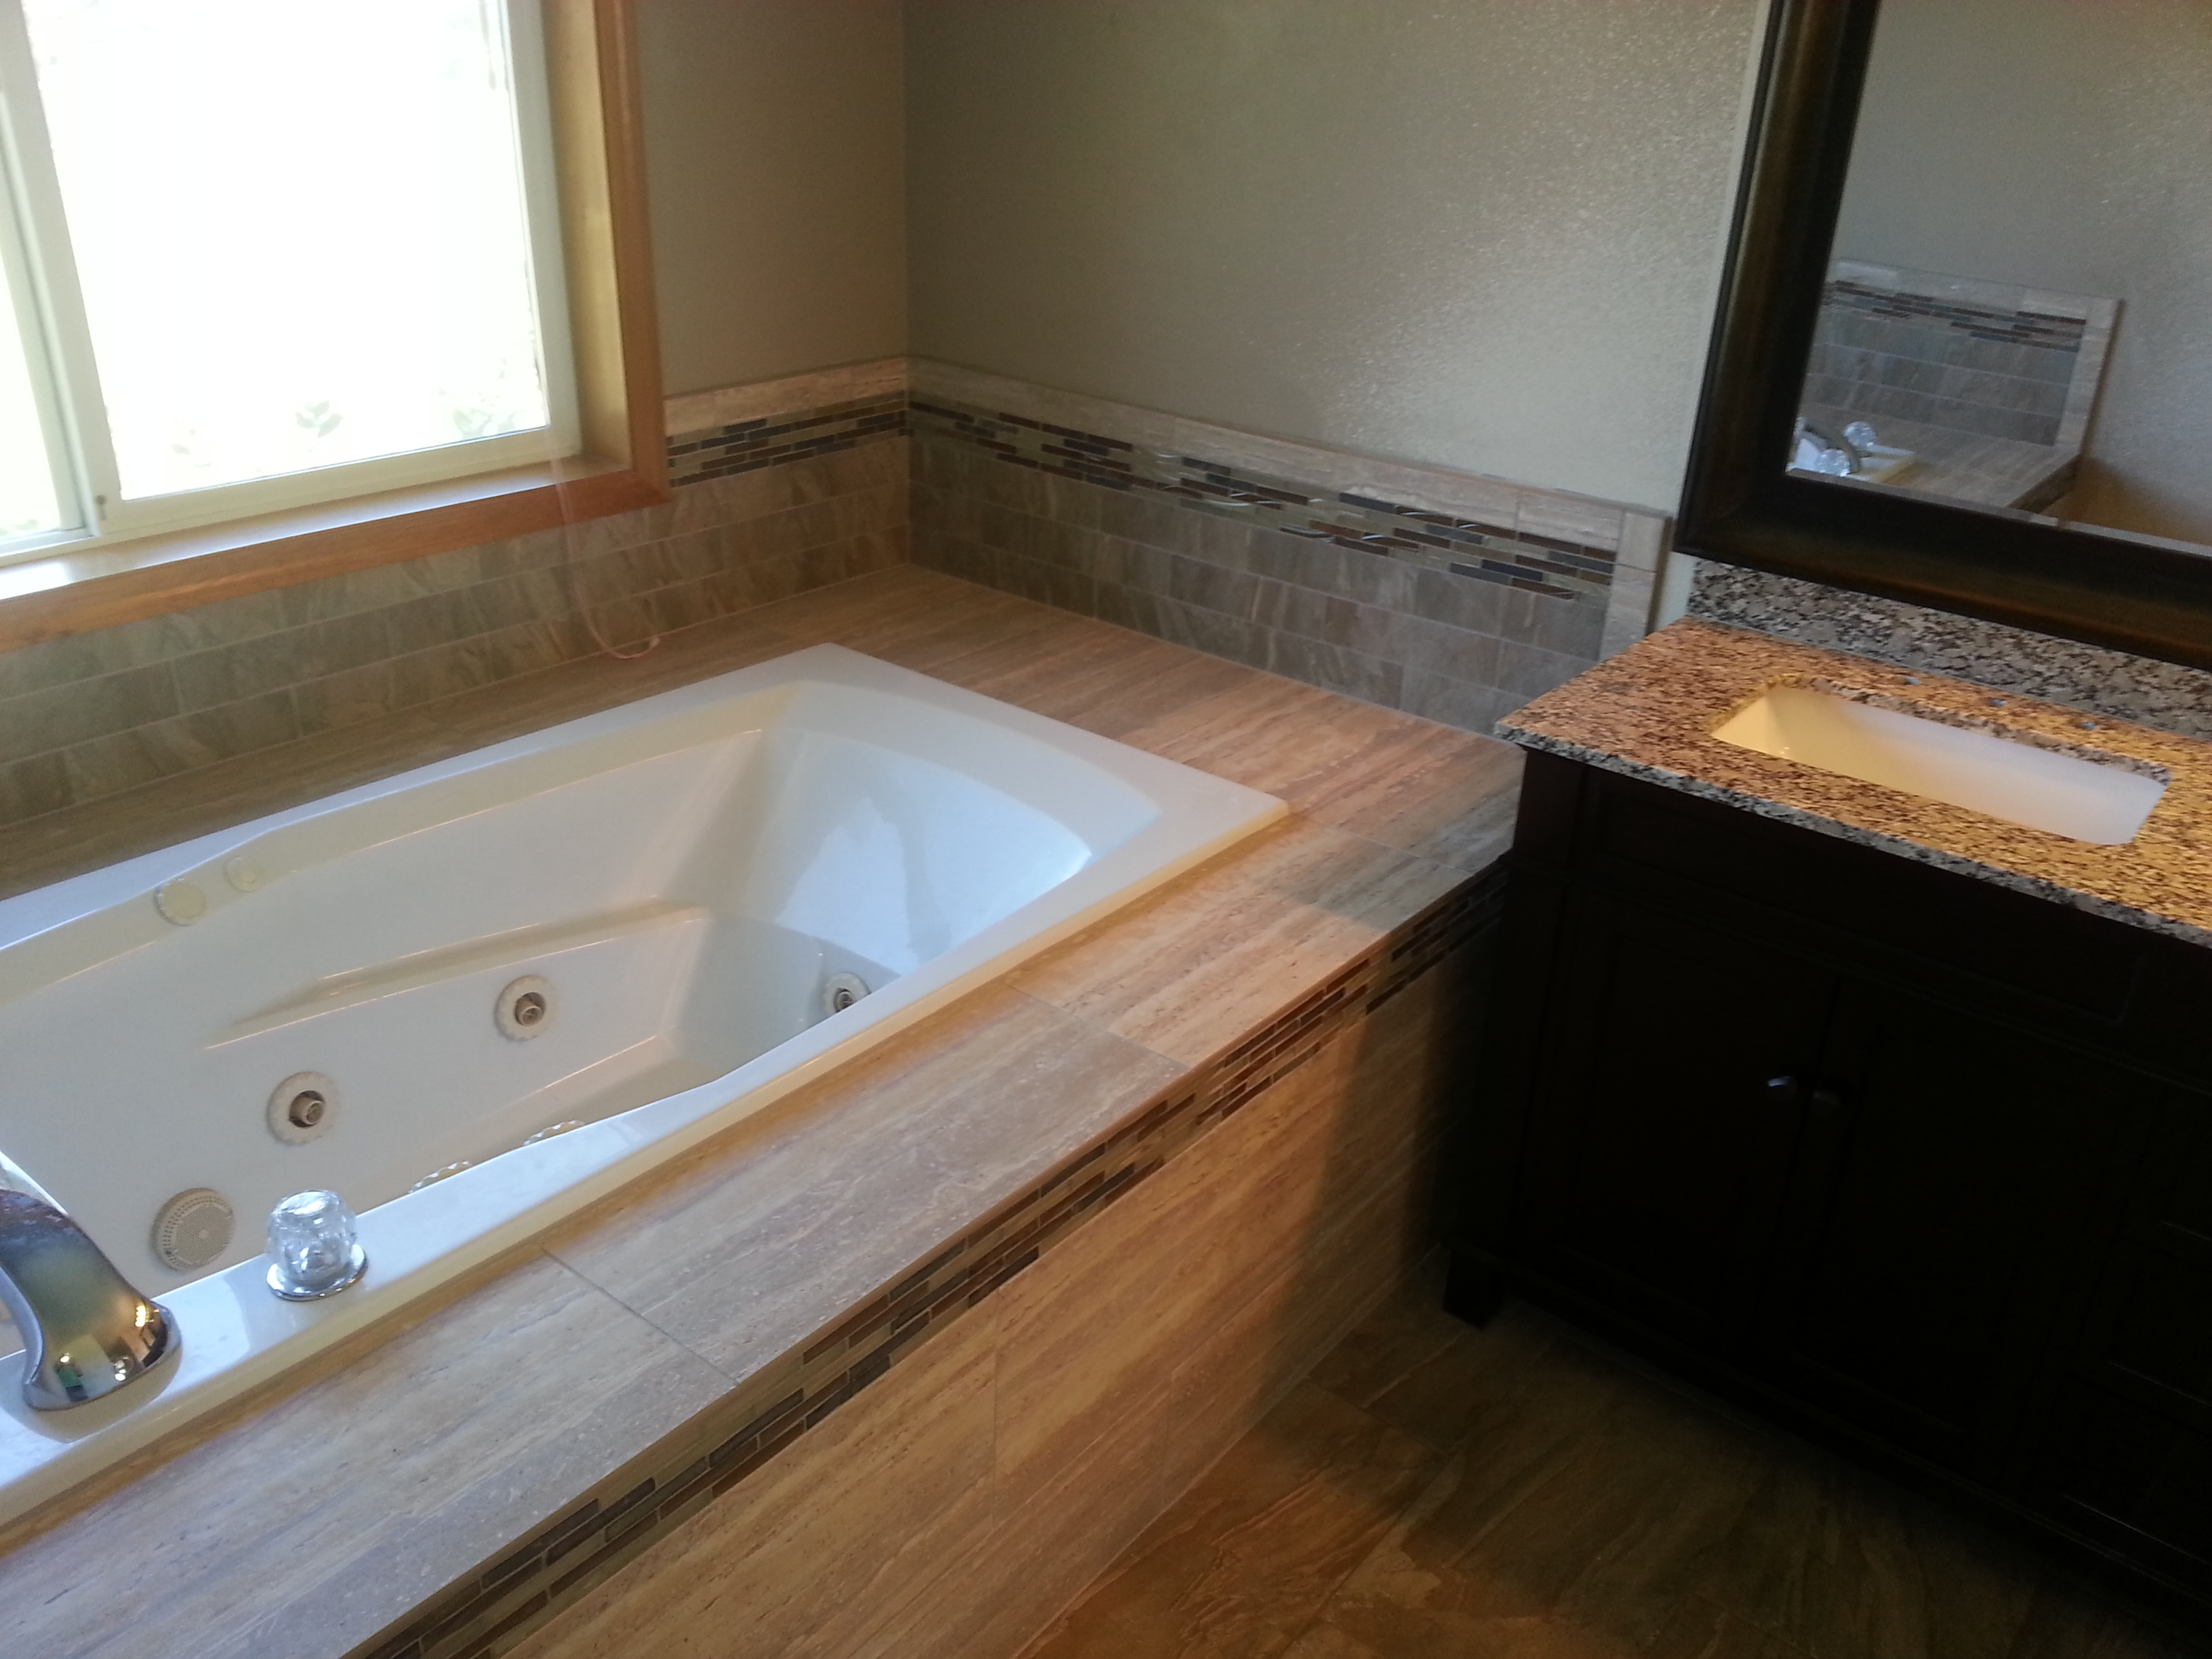 Tile Tub and floor